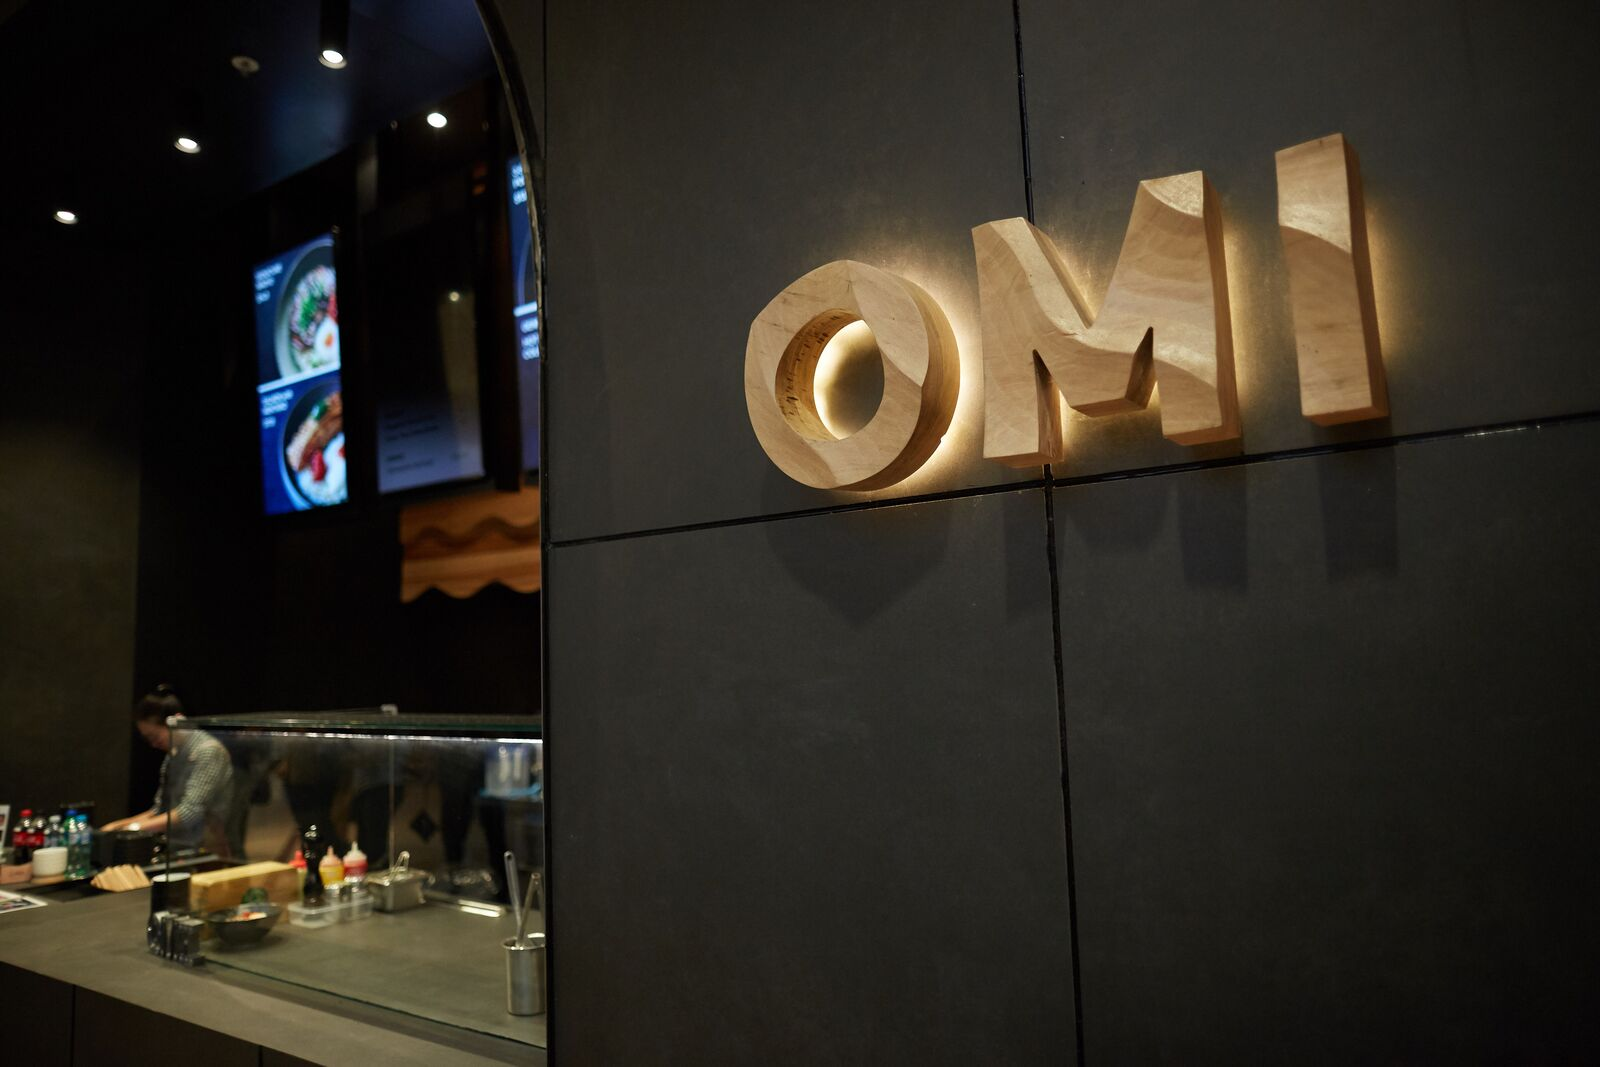 omi-this-is-such-a-good-business-franchises-now-available-share-the-success-6